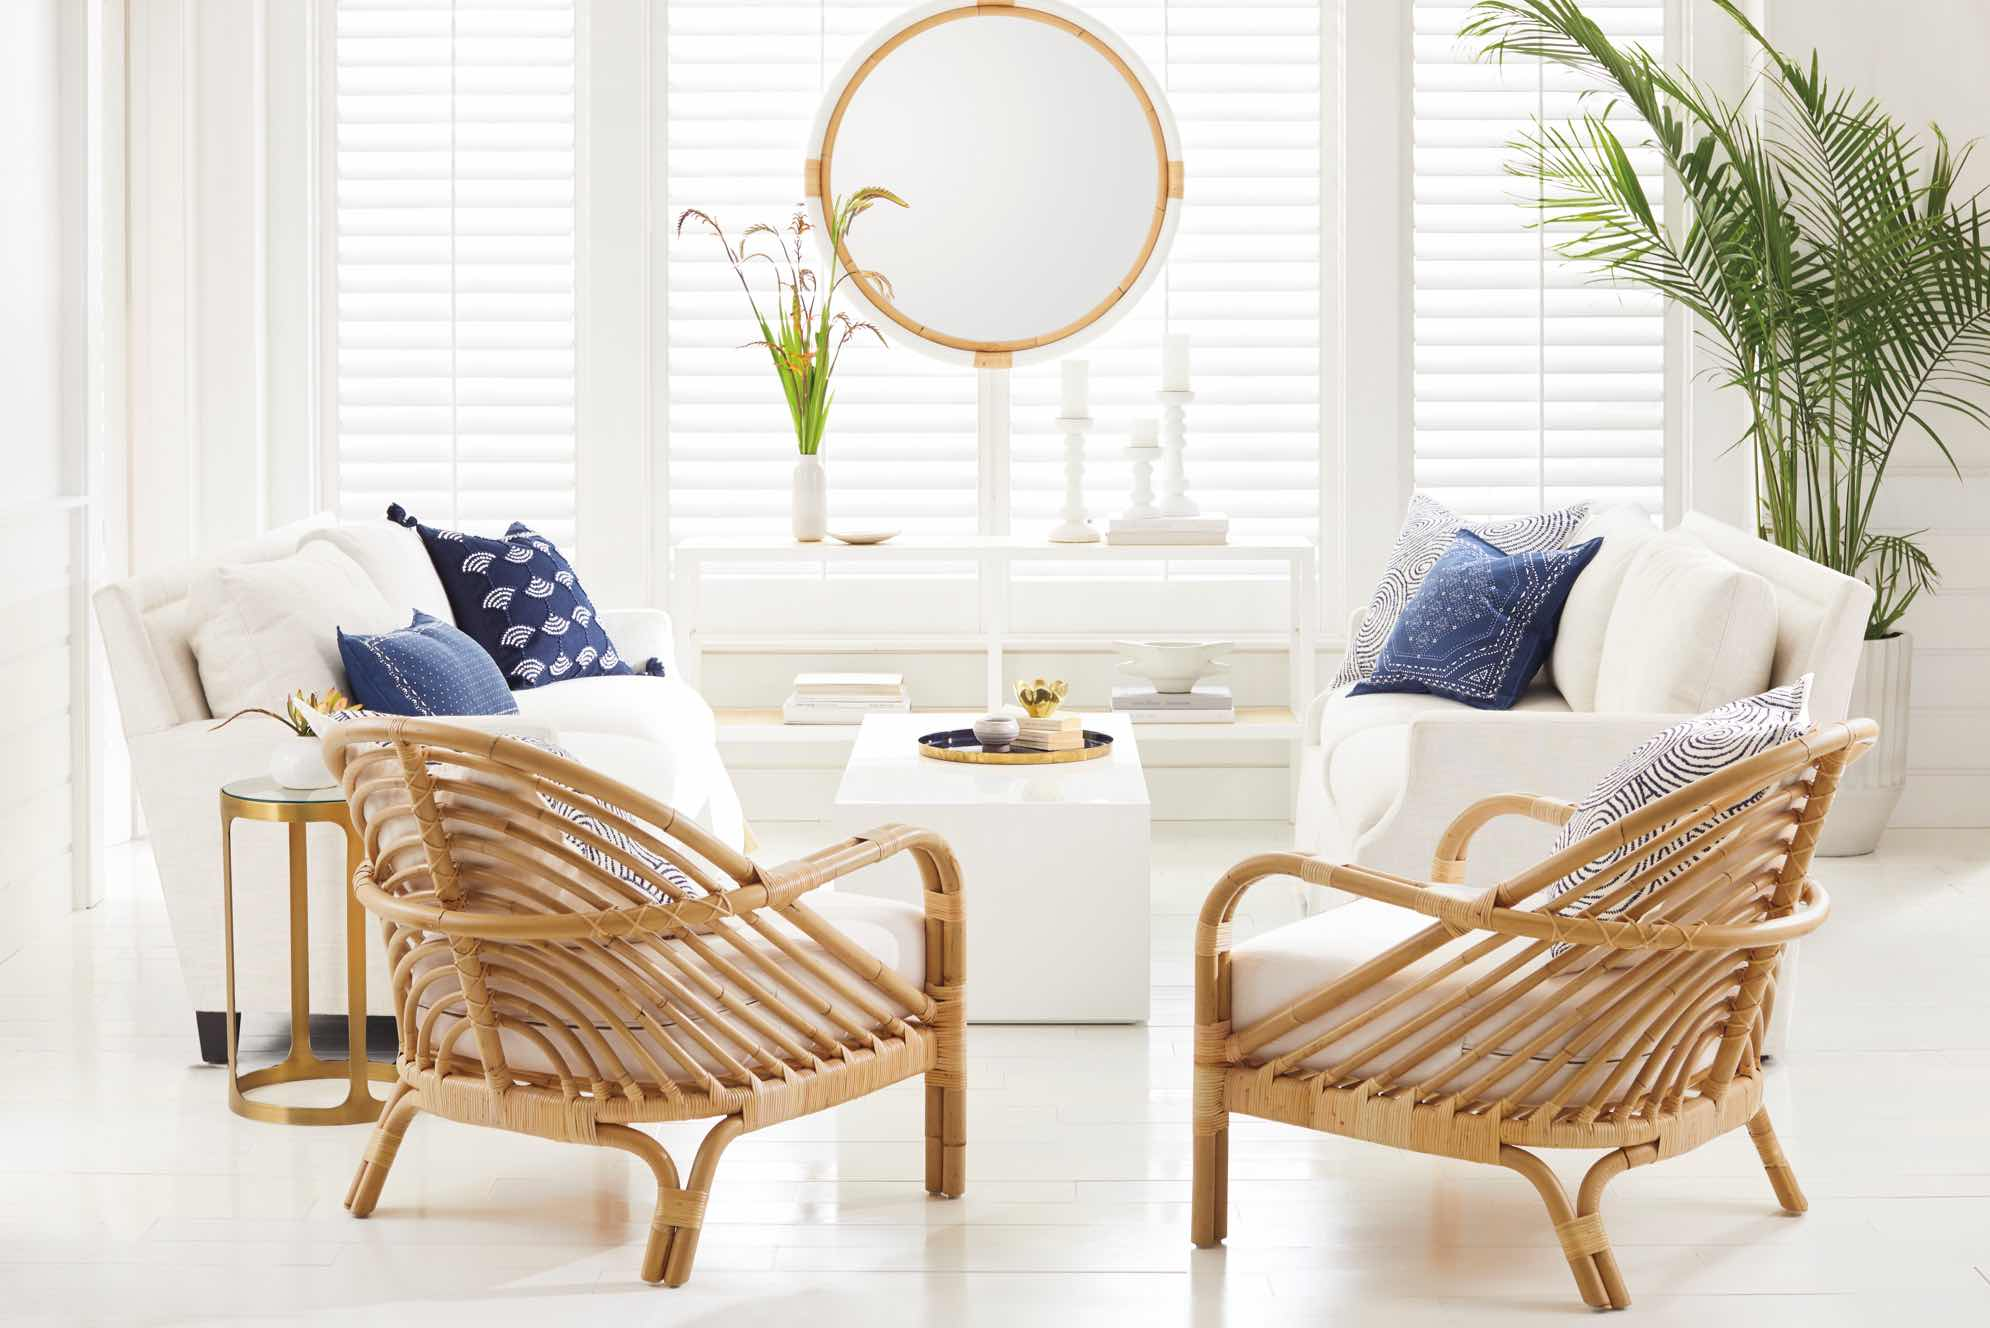 Edgewater Serena & Lily living room with wicker chairs